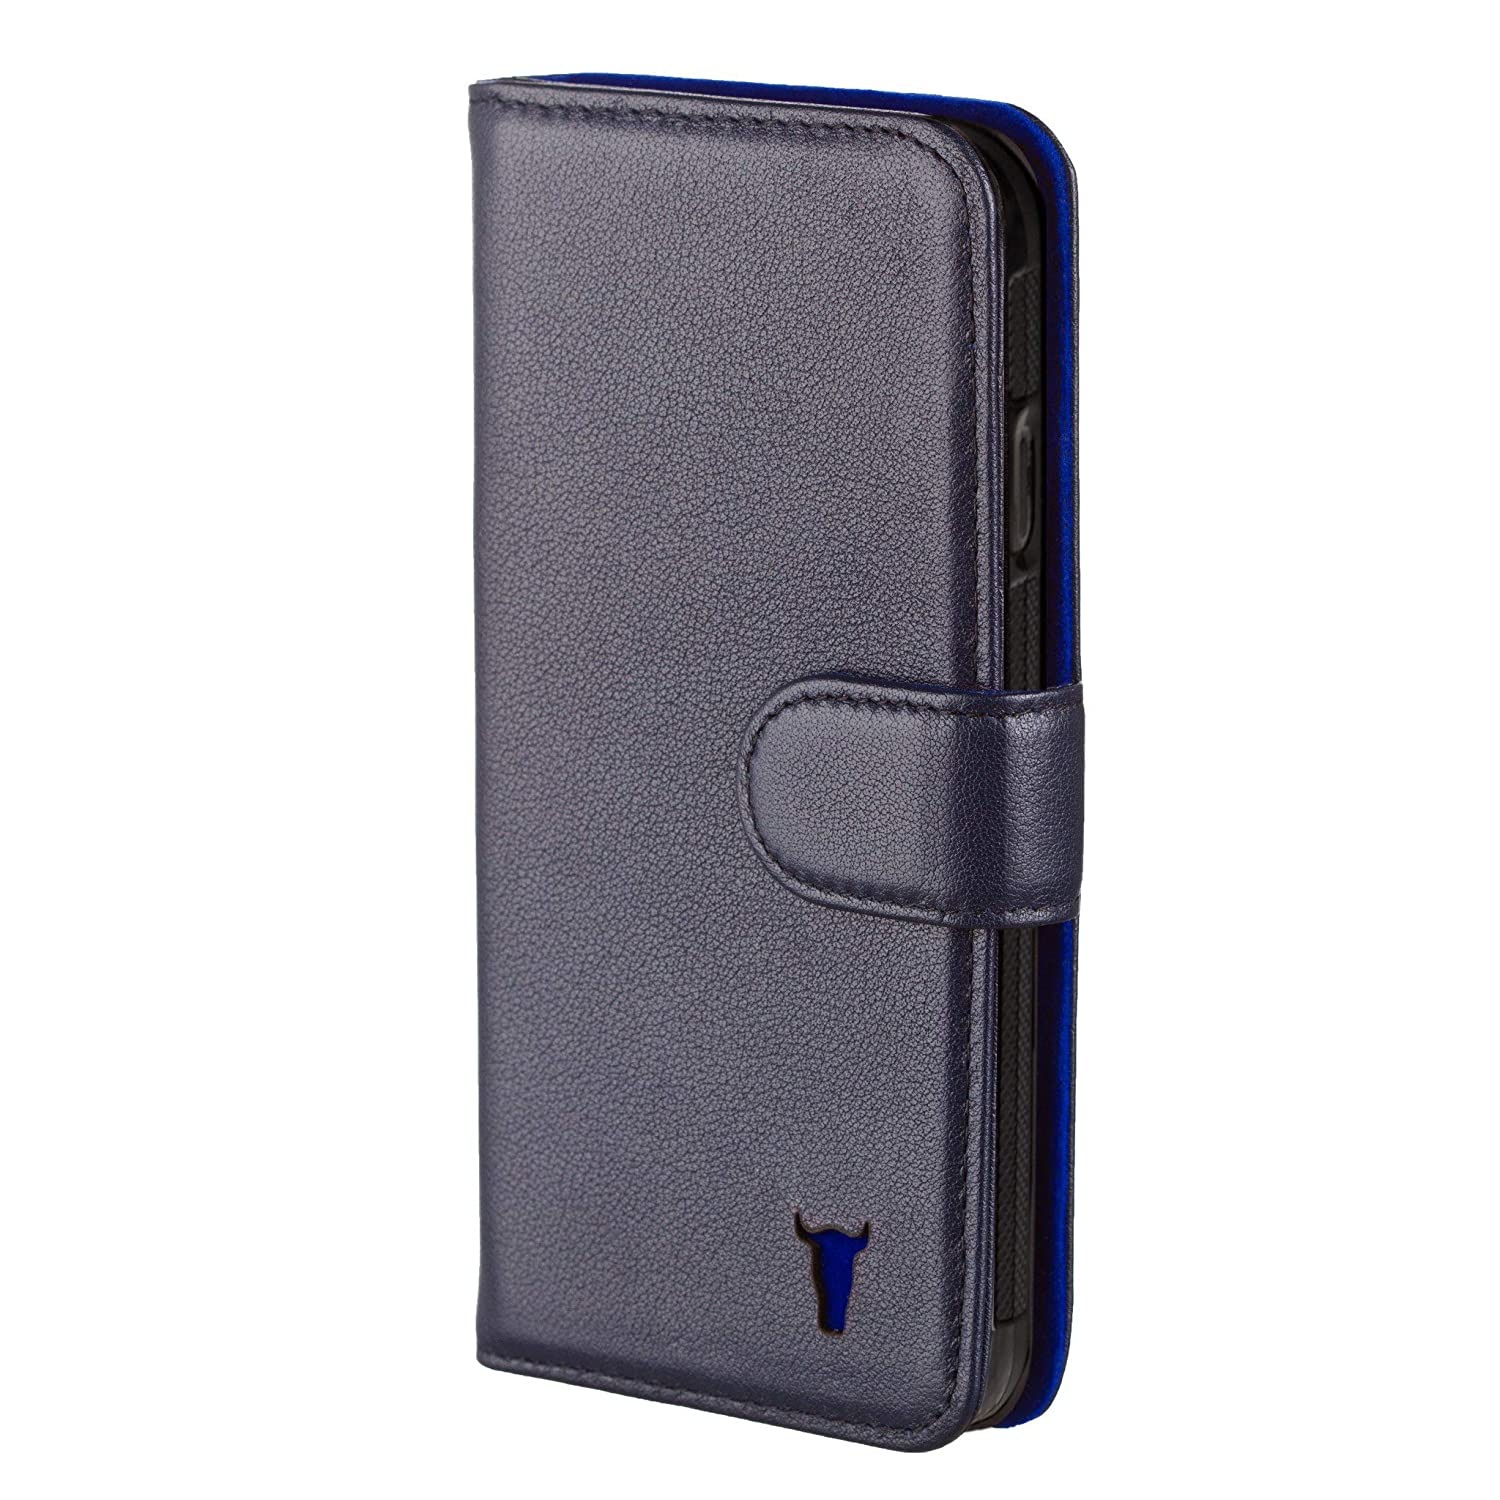 new product 2bf6f a55cc TORRO Premium Leather Wallet Case compatible with iPhone 6S. Genuine Navy  Blue Leather Wallet Case with Card Slots for Apple iPhone 6 and iPhone 6S -  ...